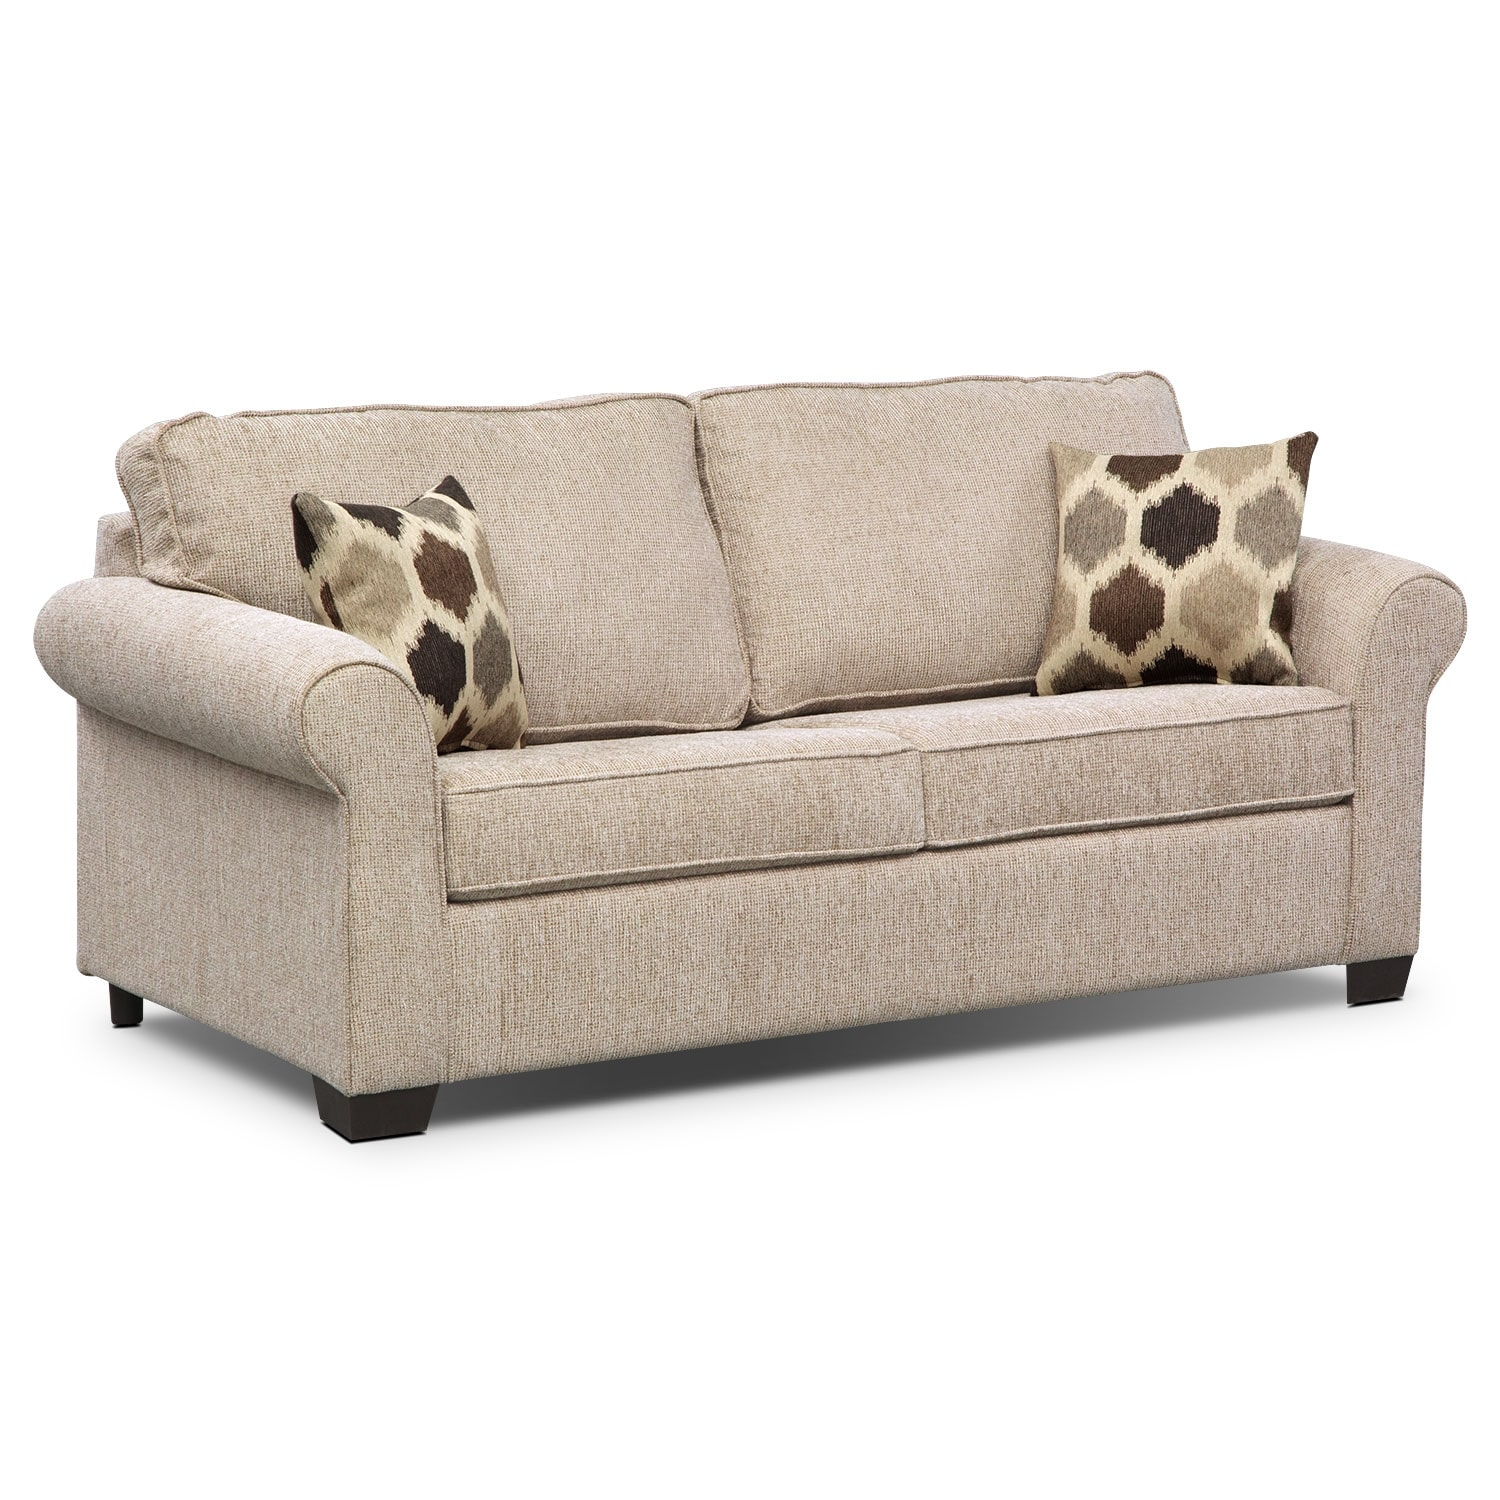 Fletcher Queen Memory Foam Sleeper Sofa Beige